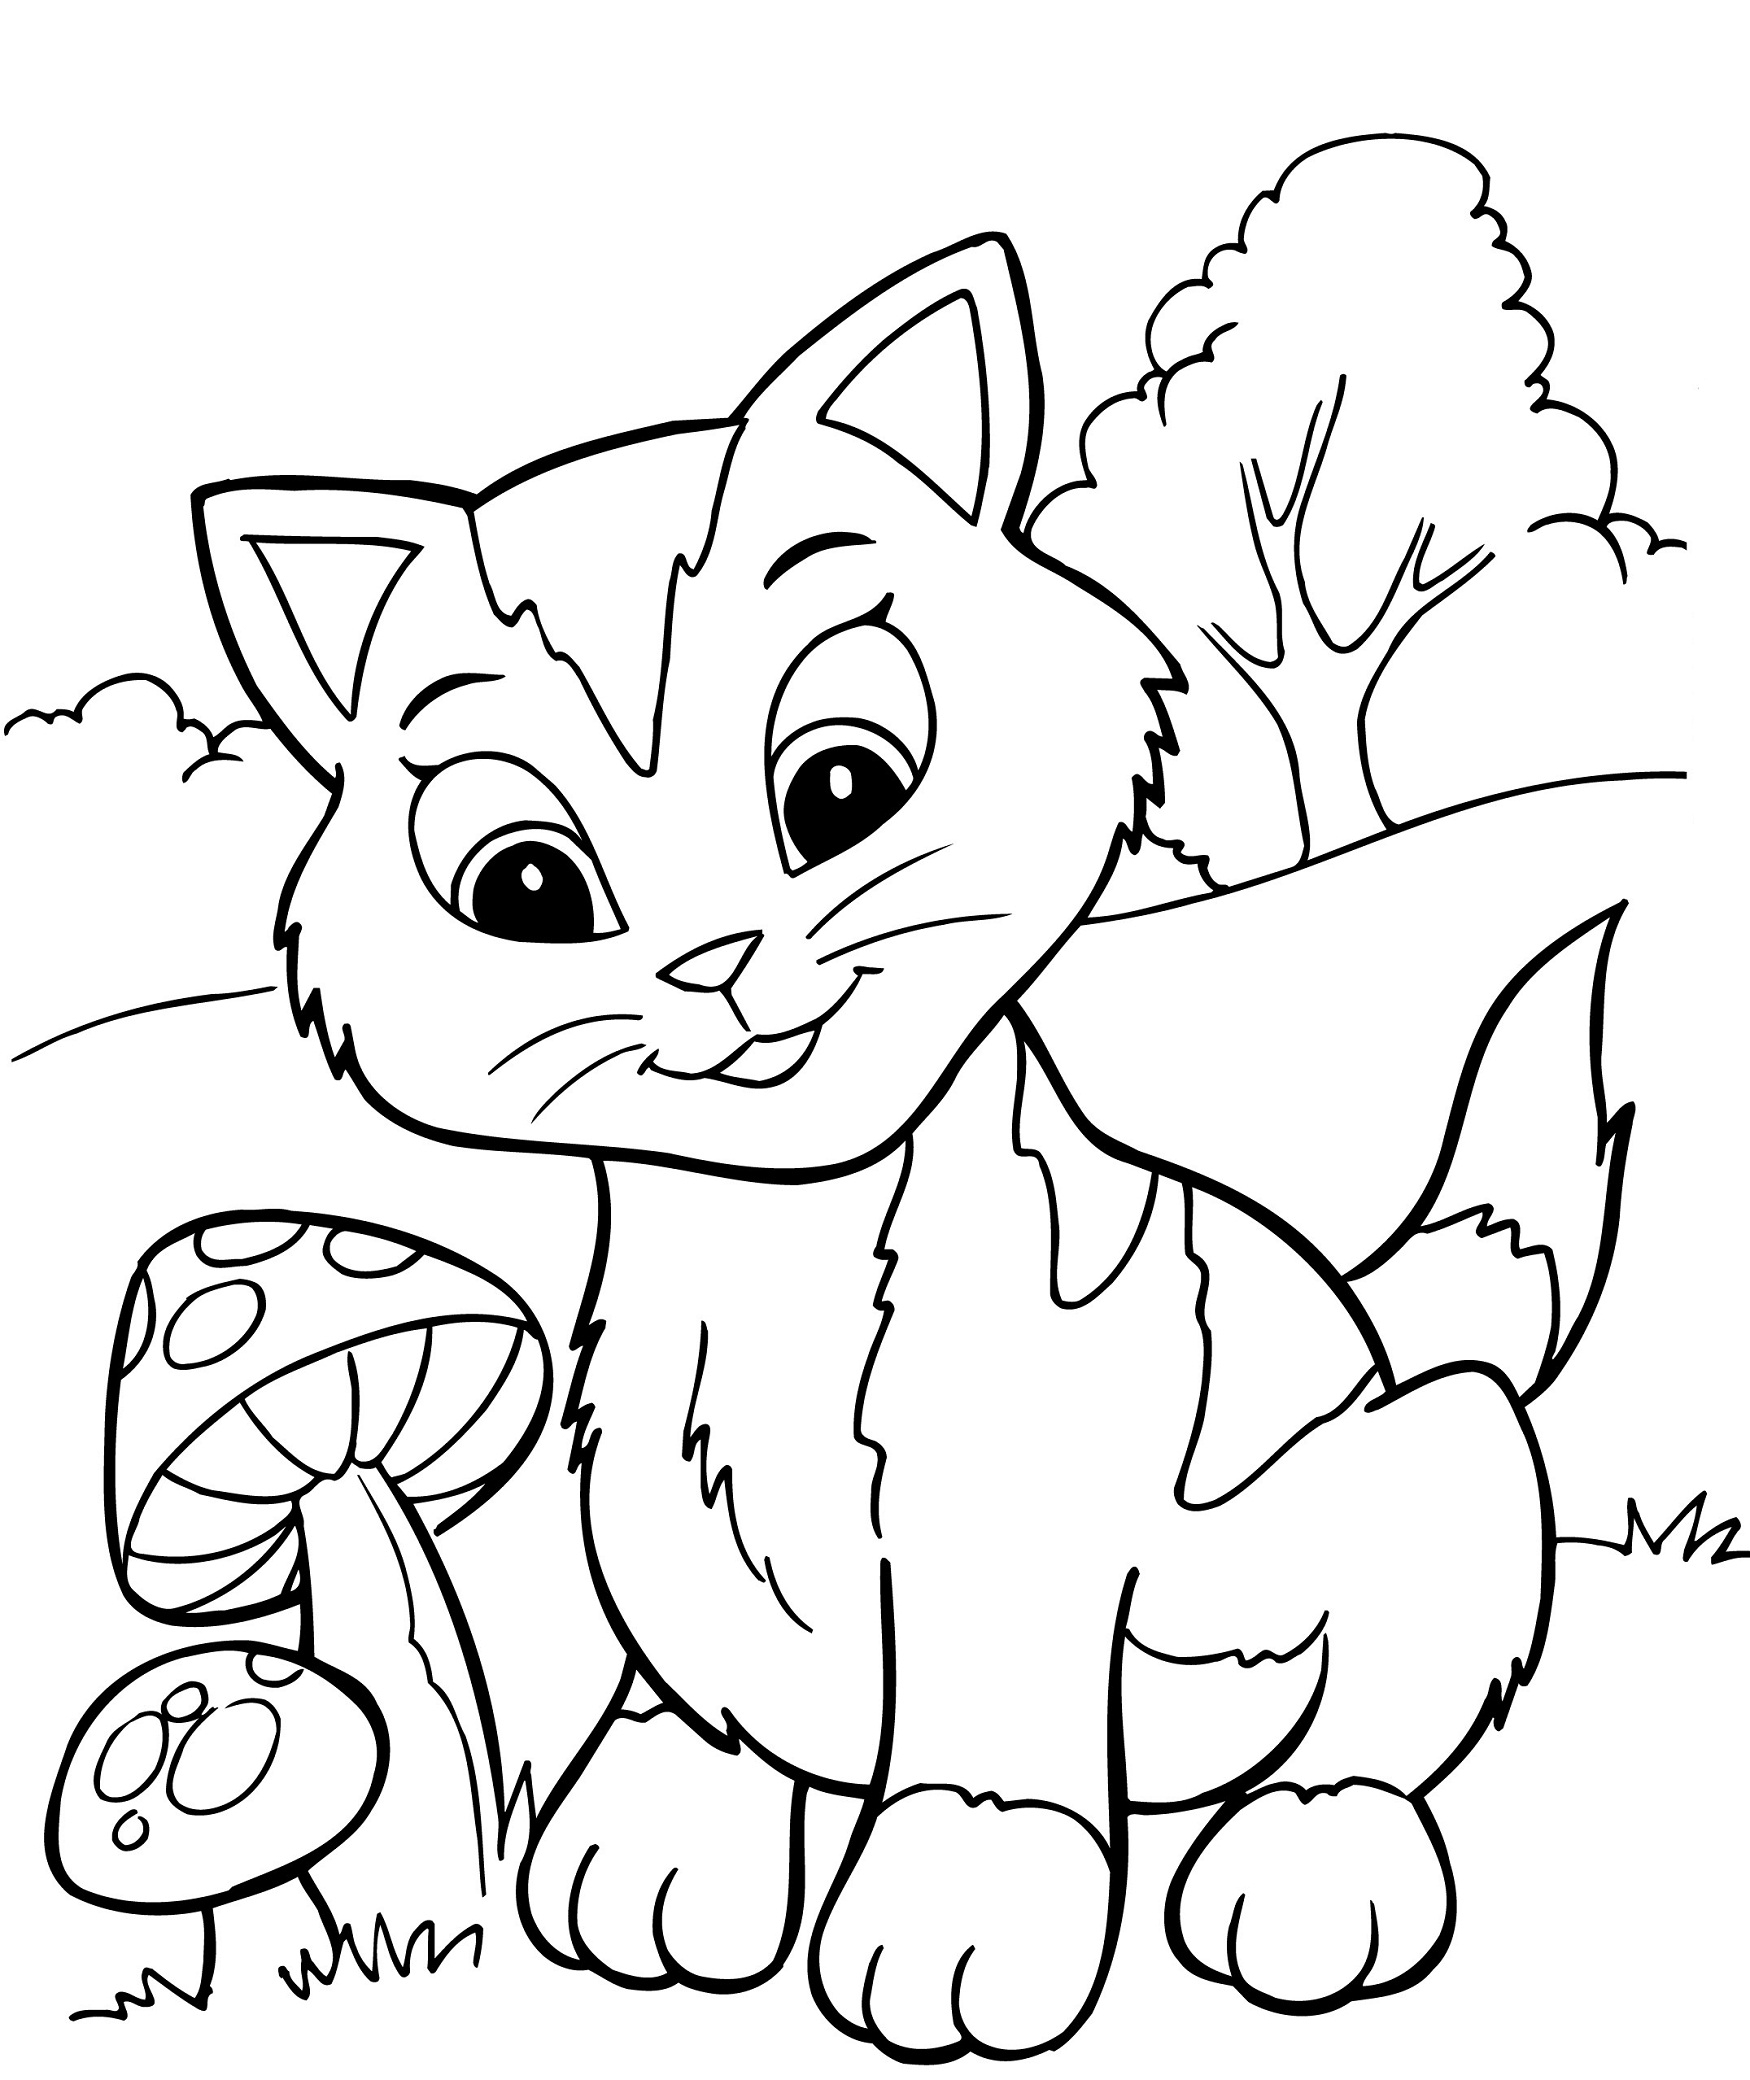 Exclusive Photo of Kittens Coloring Pages